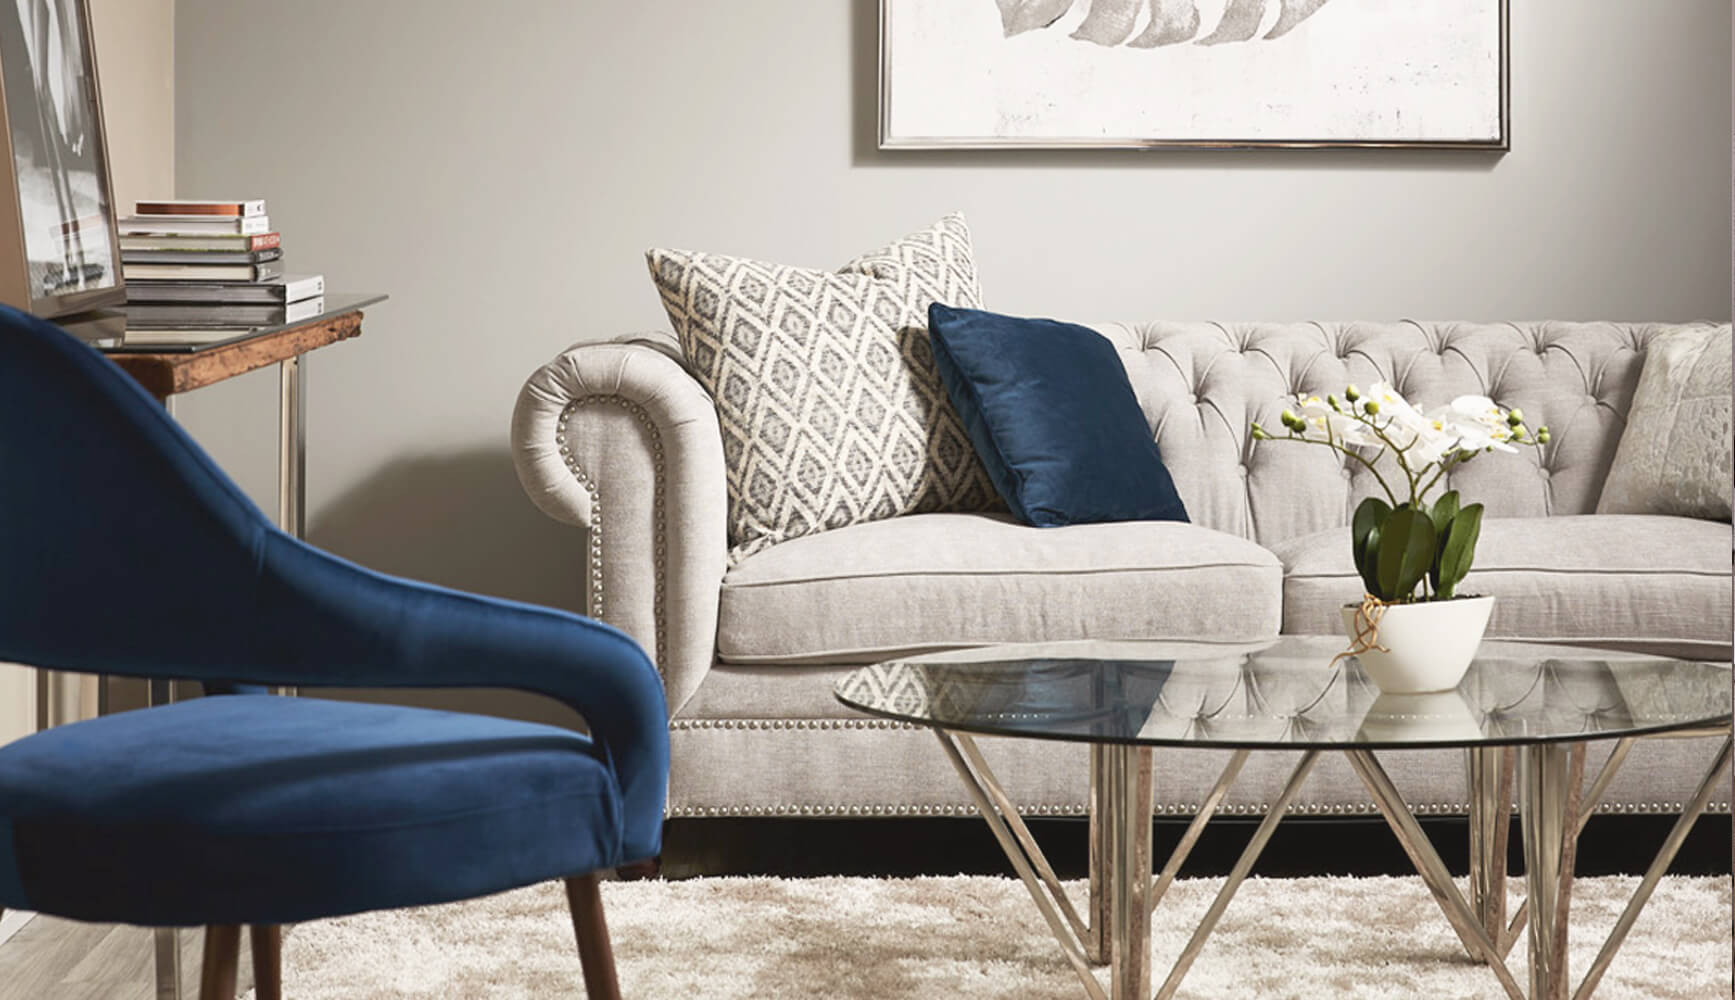 Furniture Design: Things you can do to transform your living room